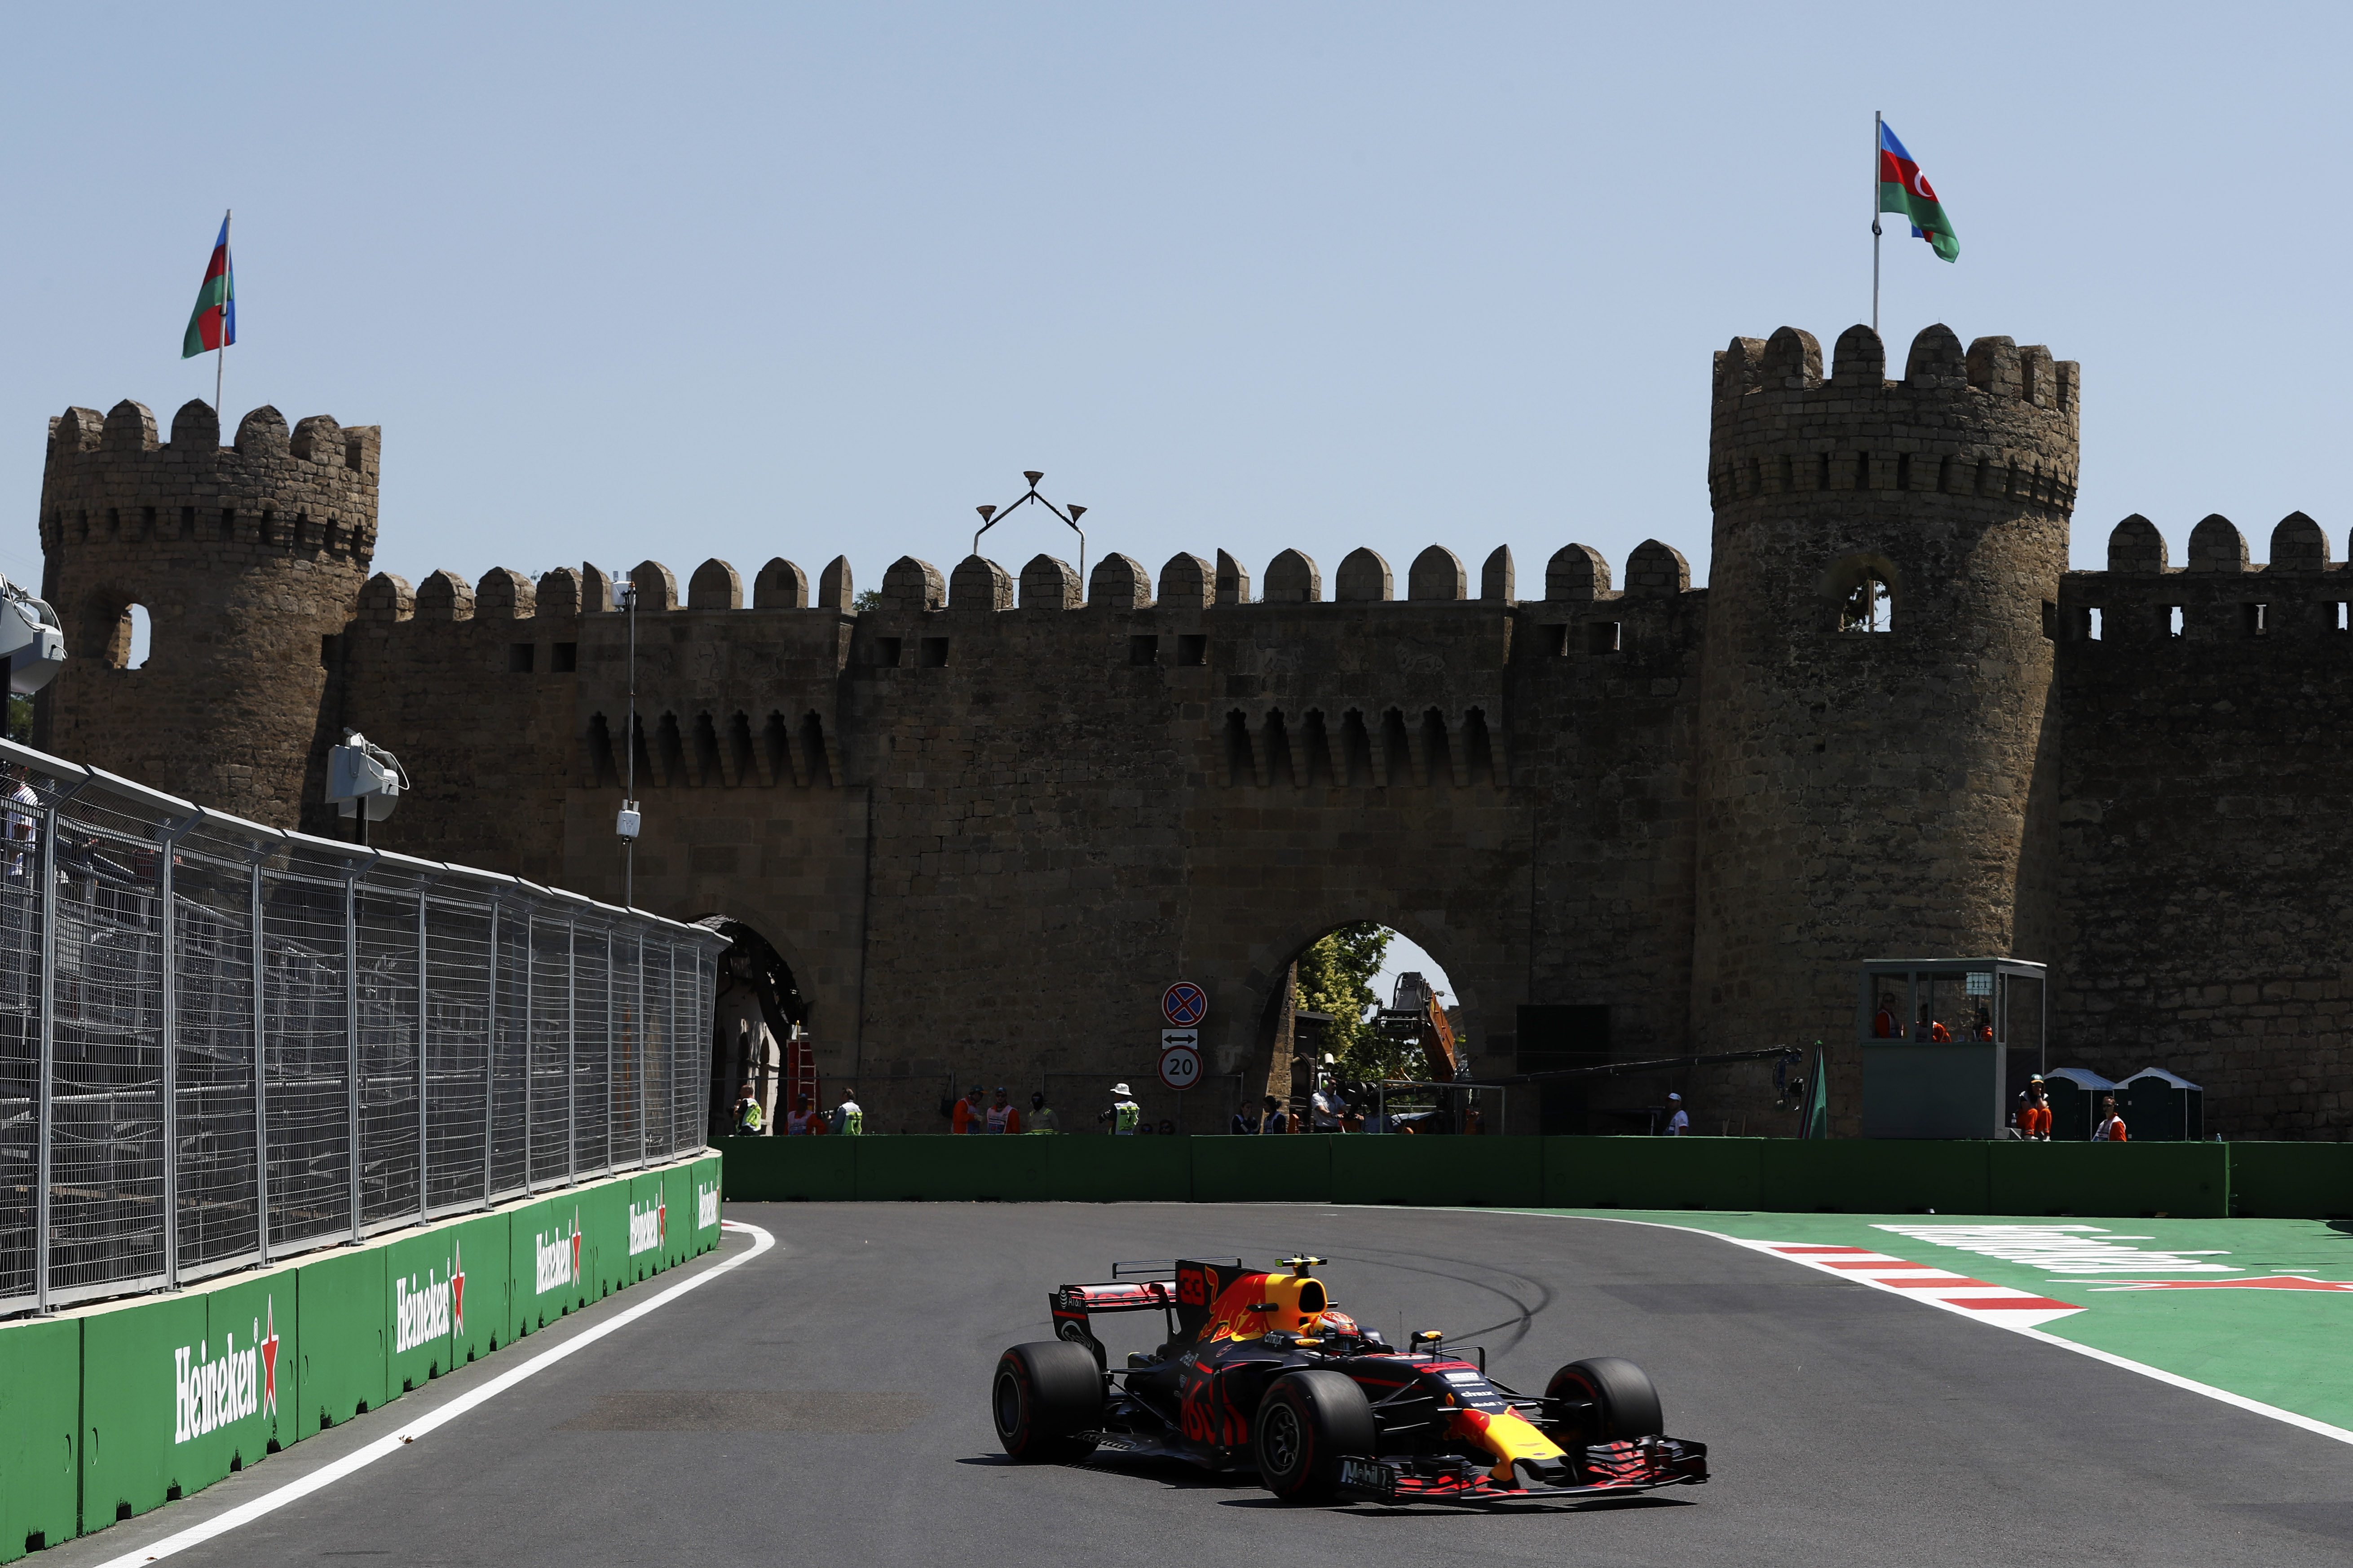 Baku City Circuit, Baku, Azerbaijan. Friday 23 June 2017. Max Verstappen, Red Bull Racing RB13 TAG Heuer. World Copyright: Glenn Dunbar/LAT Images ref: Digital Image _31I9217